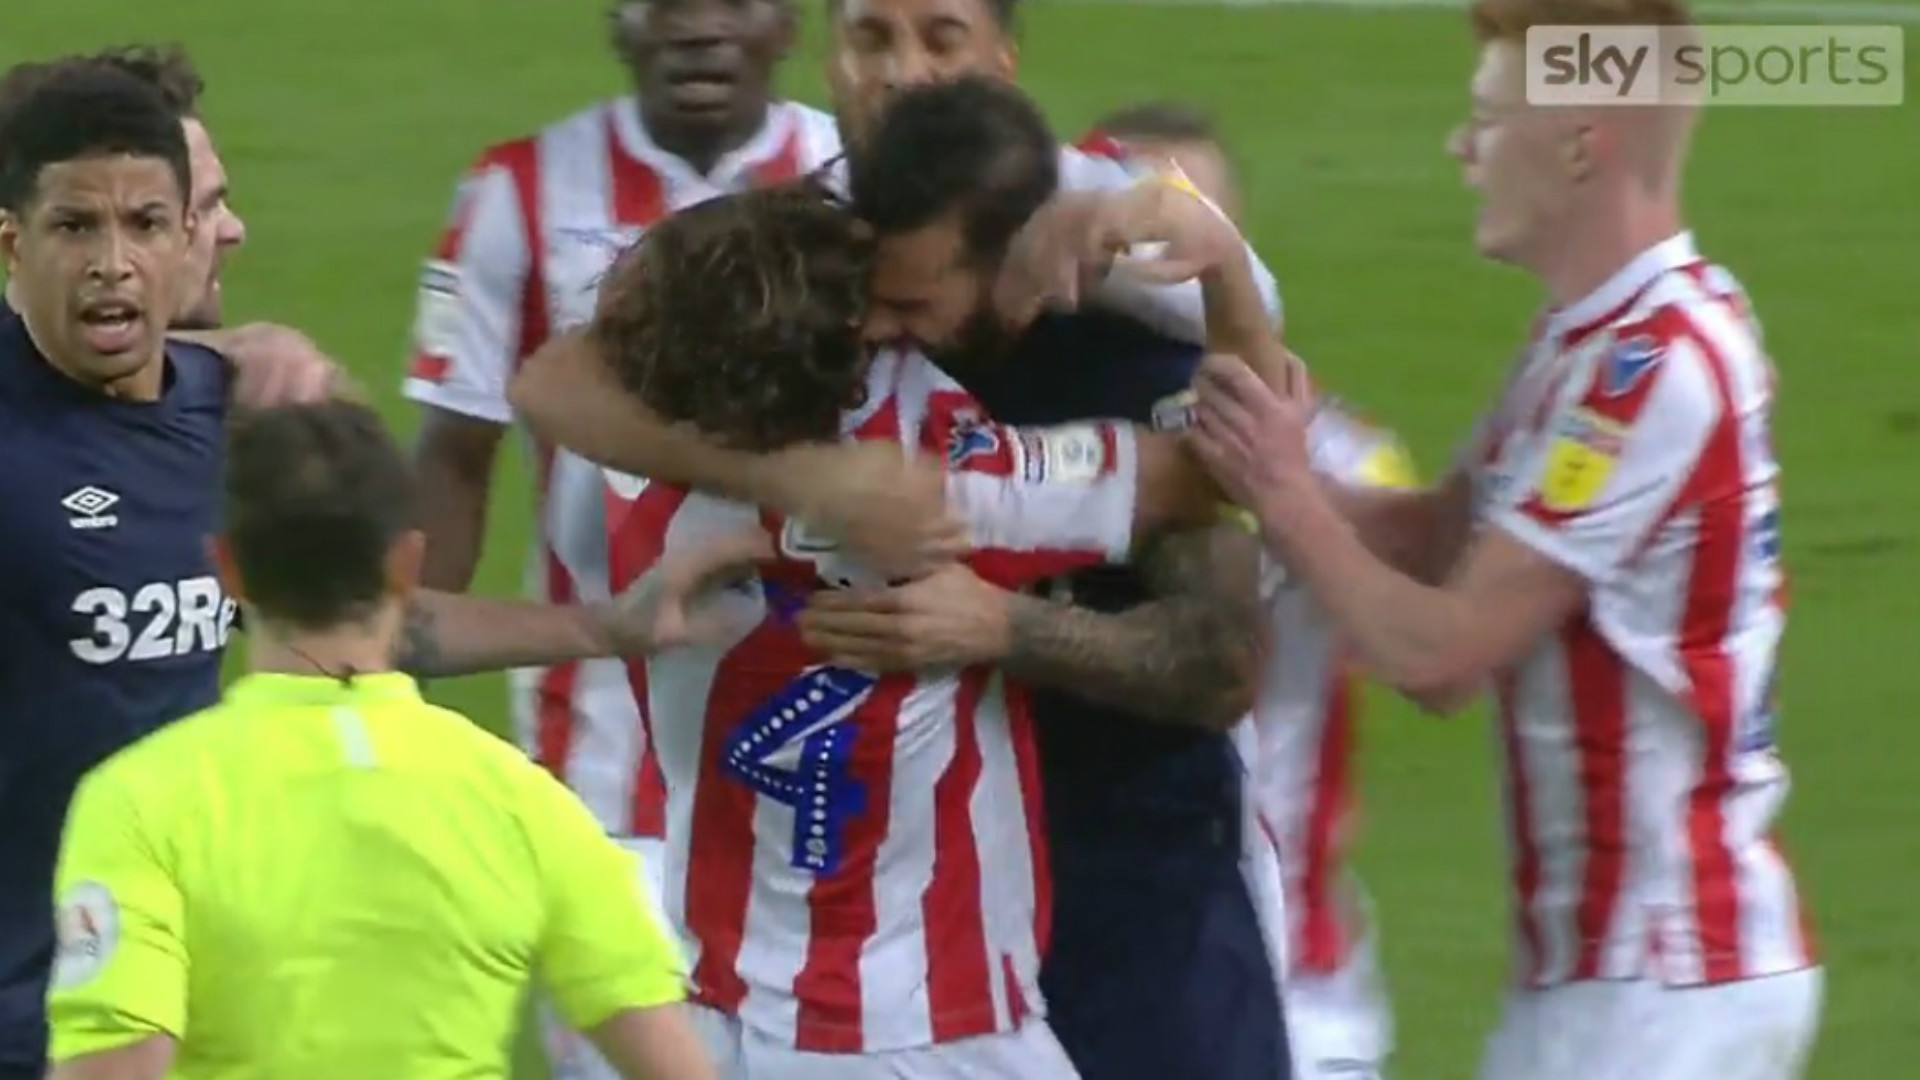 EMBED ONLY Bradley Johnson Joe Allen Derby County Stoke City screenshot